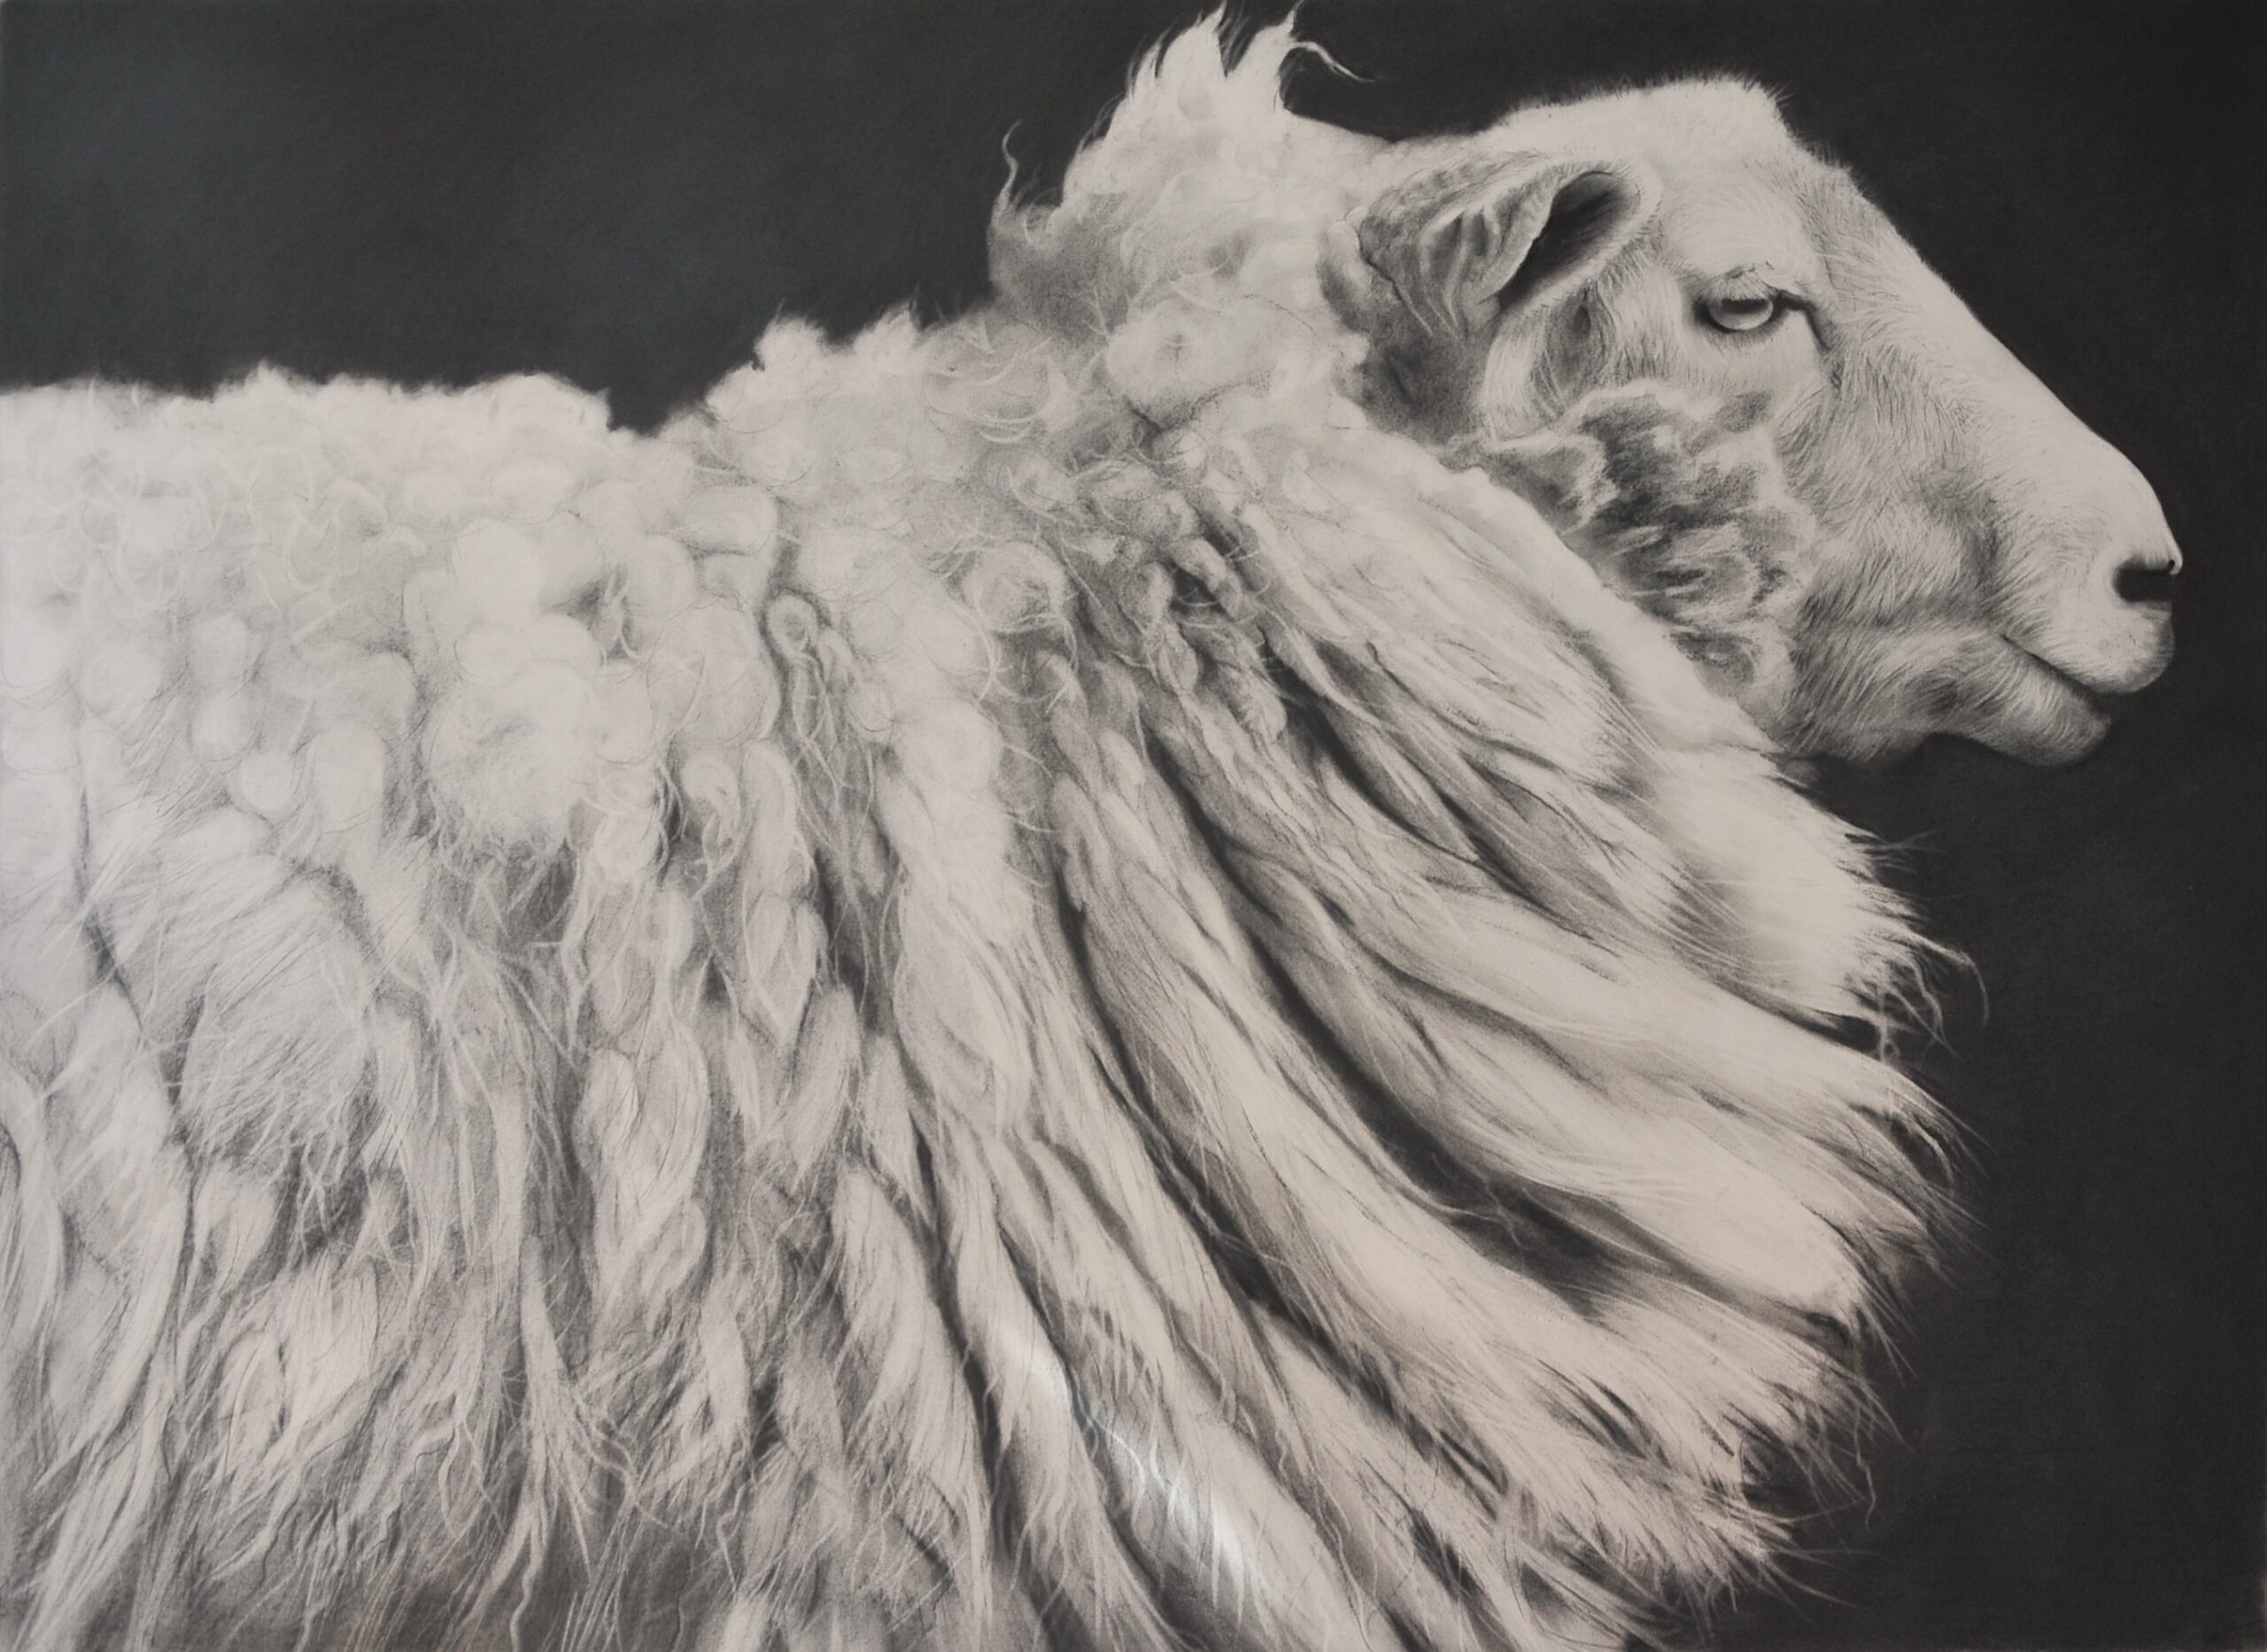 Charcoal drawing of a sheep head and shoulders